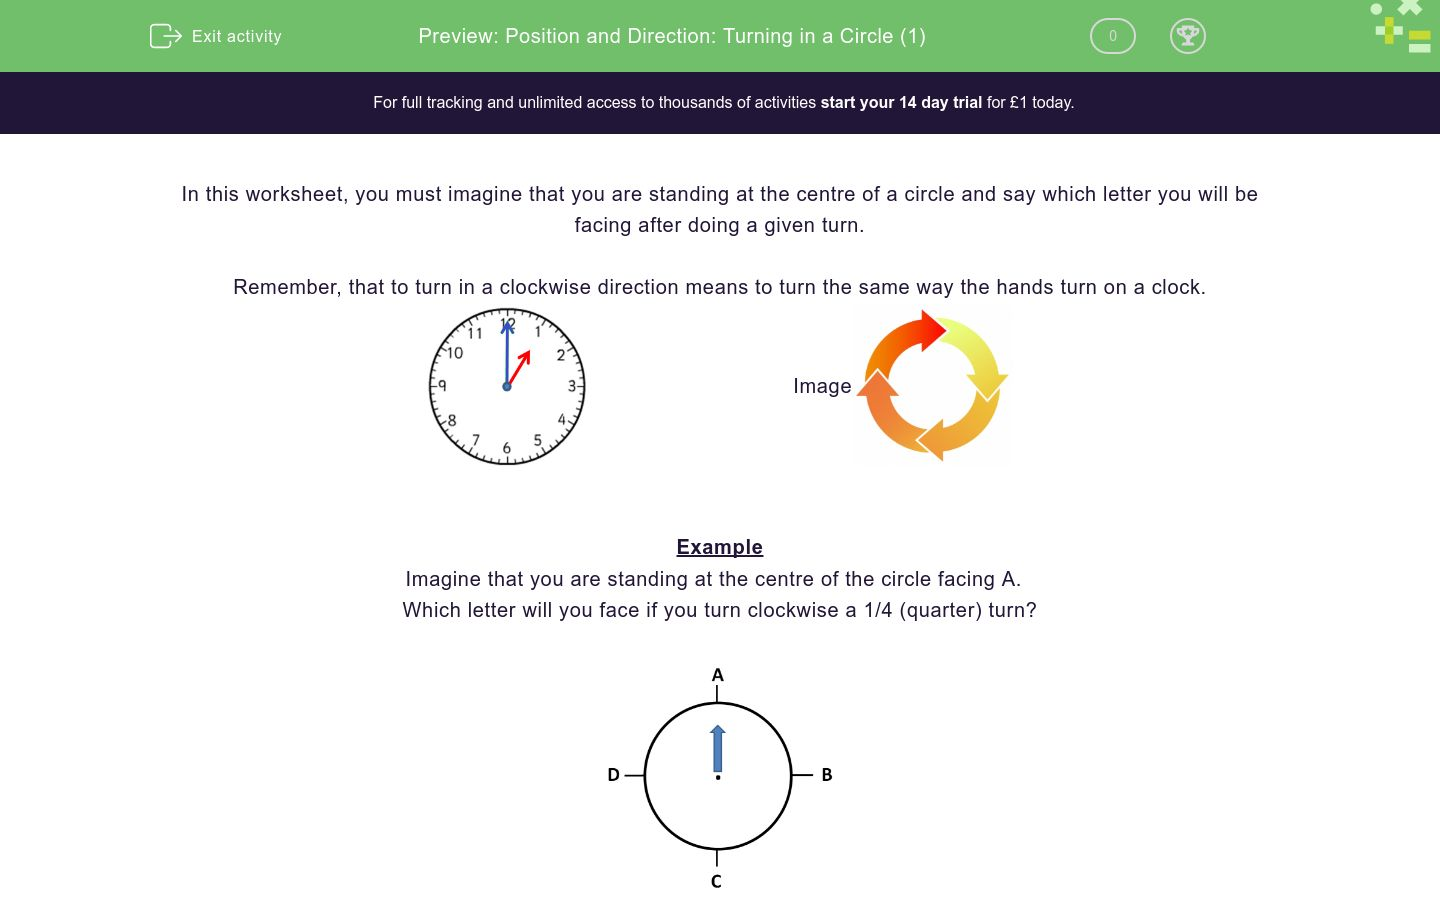 'Position and Direction: Turning in a Circle (1)' worksheet